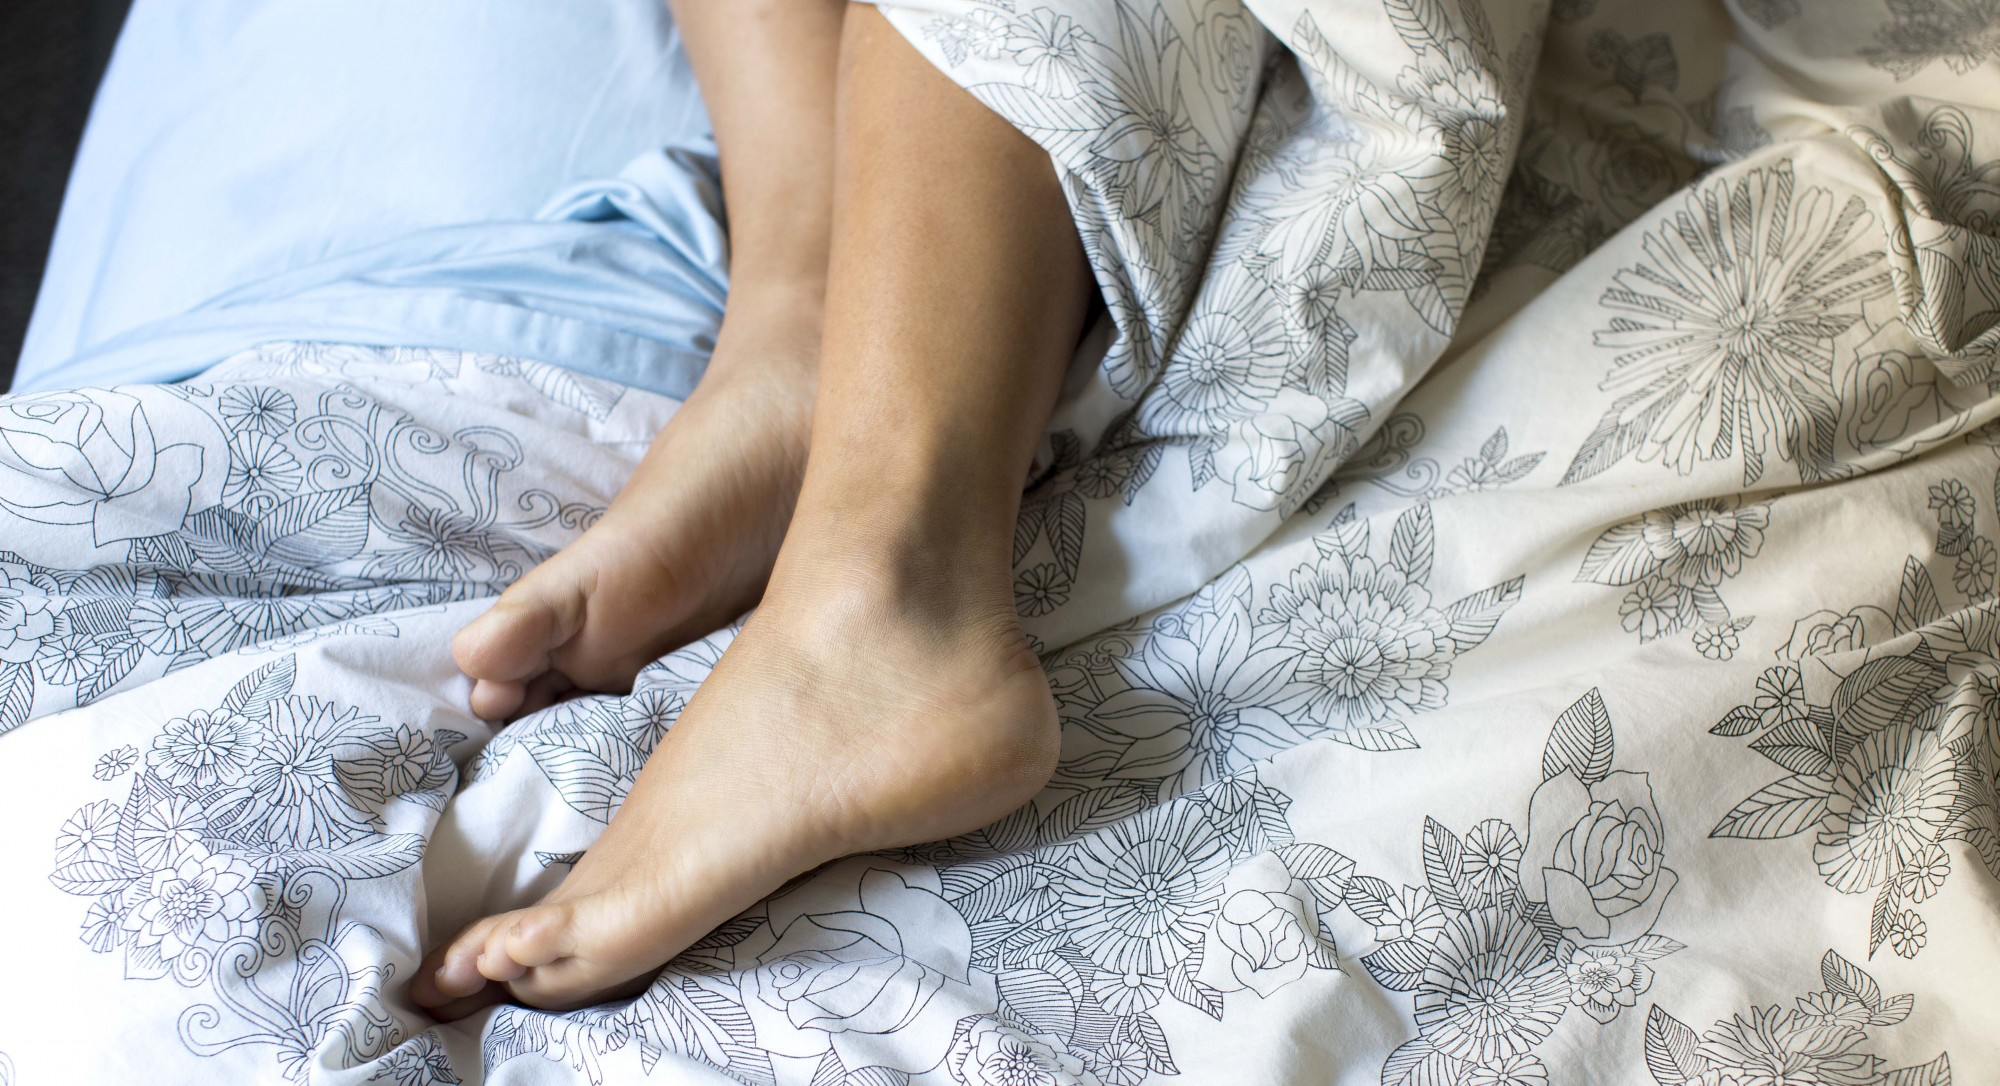 Take It All Off: Is Sleeping Naked Better for You?